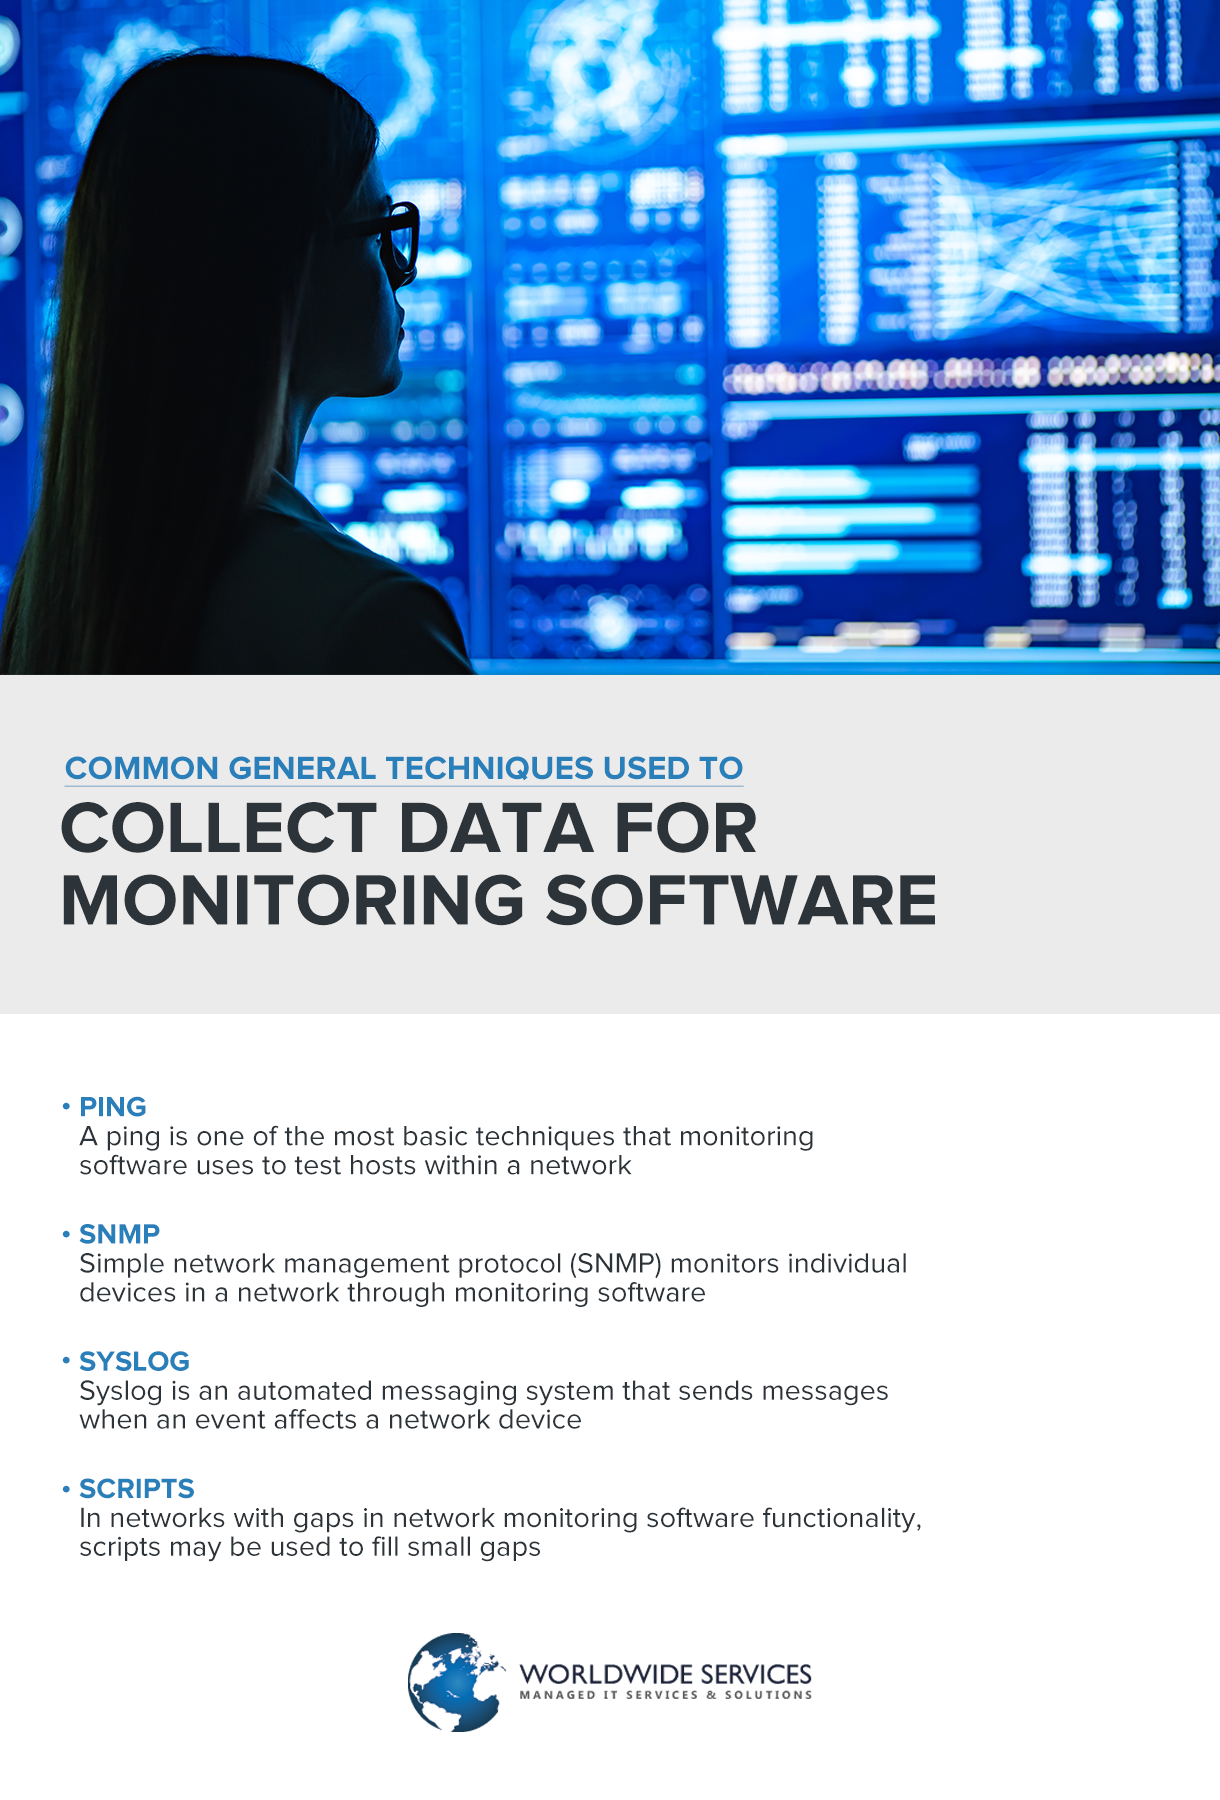 Collect data for monitoring software